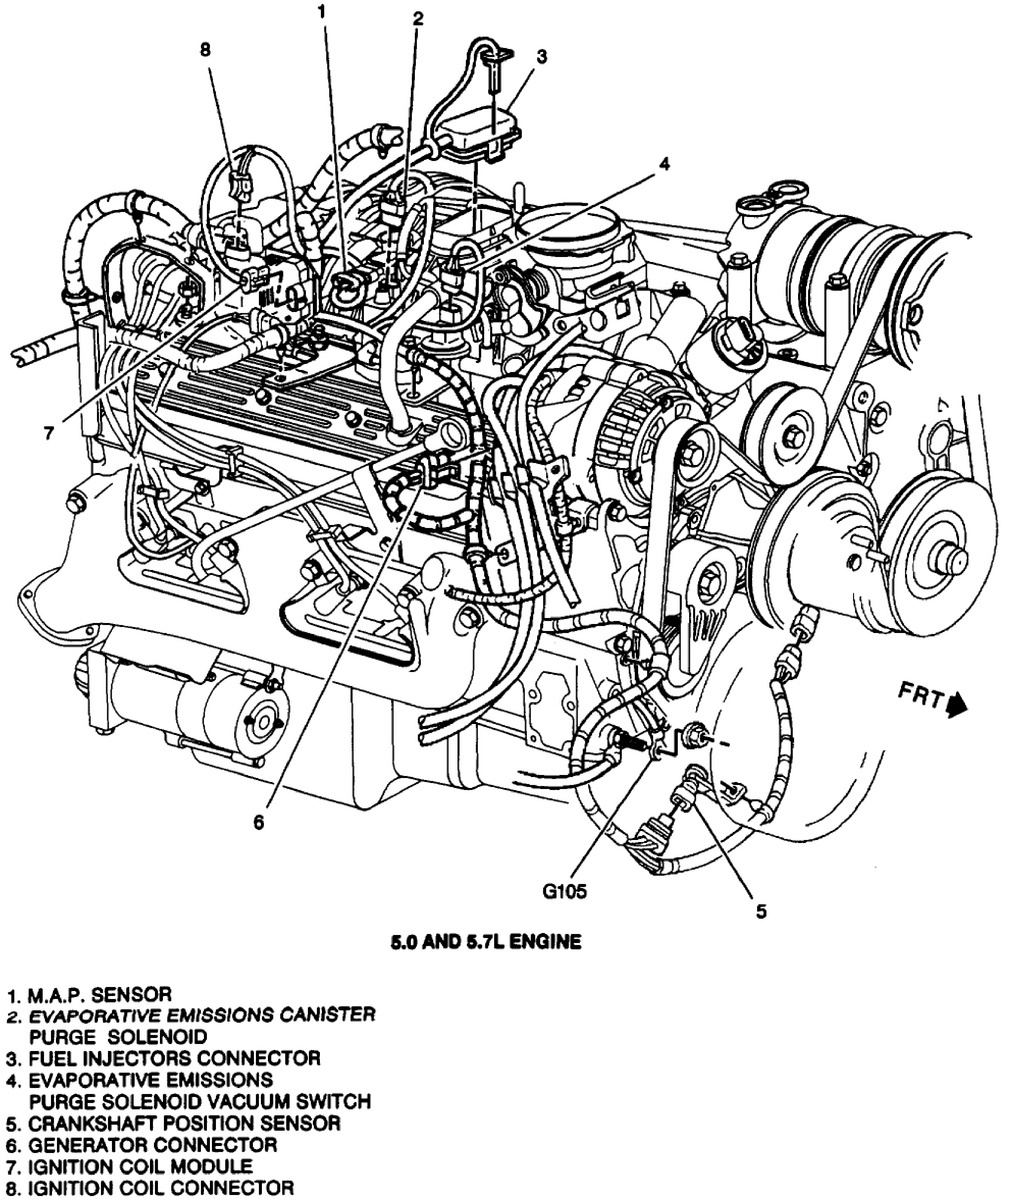 hight resolution of 89 chevy truck motor diagram wiring diagram name 1989 chevy 350 engine diagram